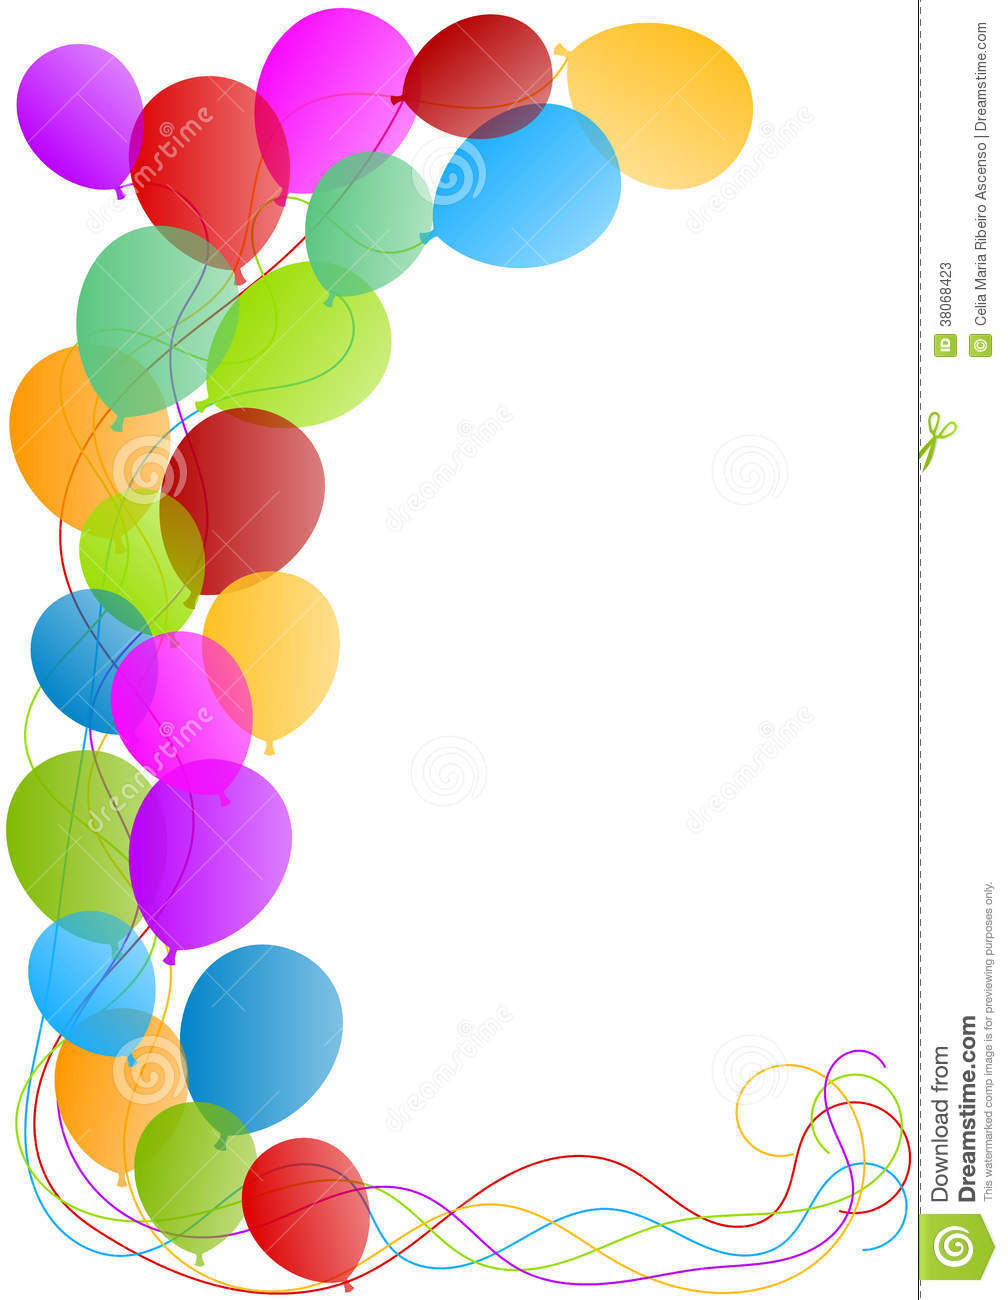 Balloons border card stock illustration. Illustration of coloured ...